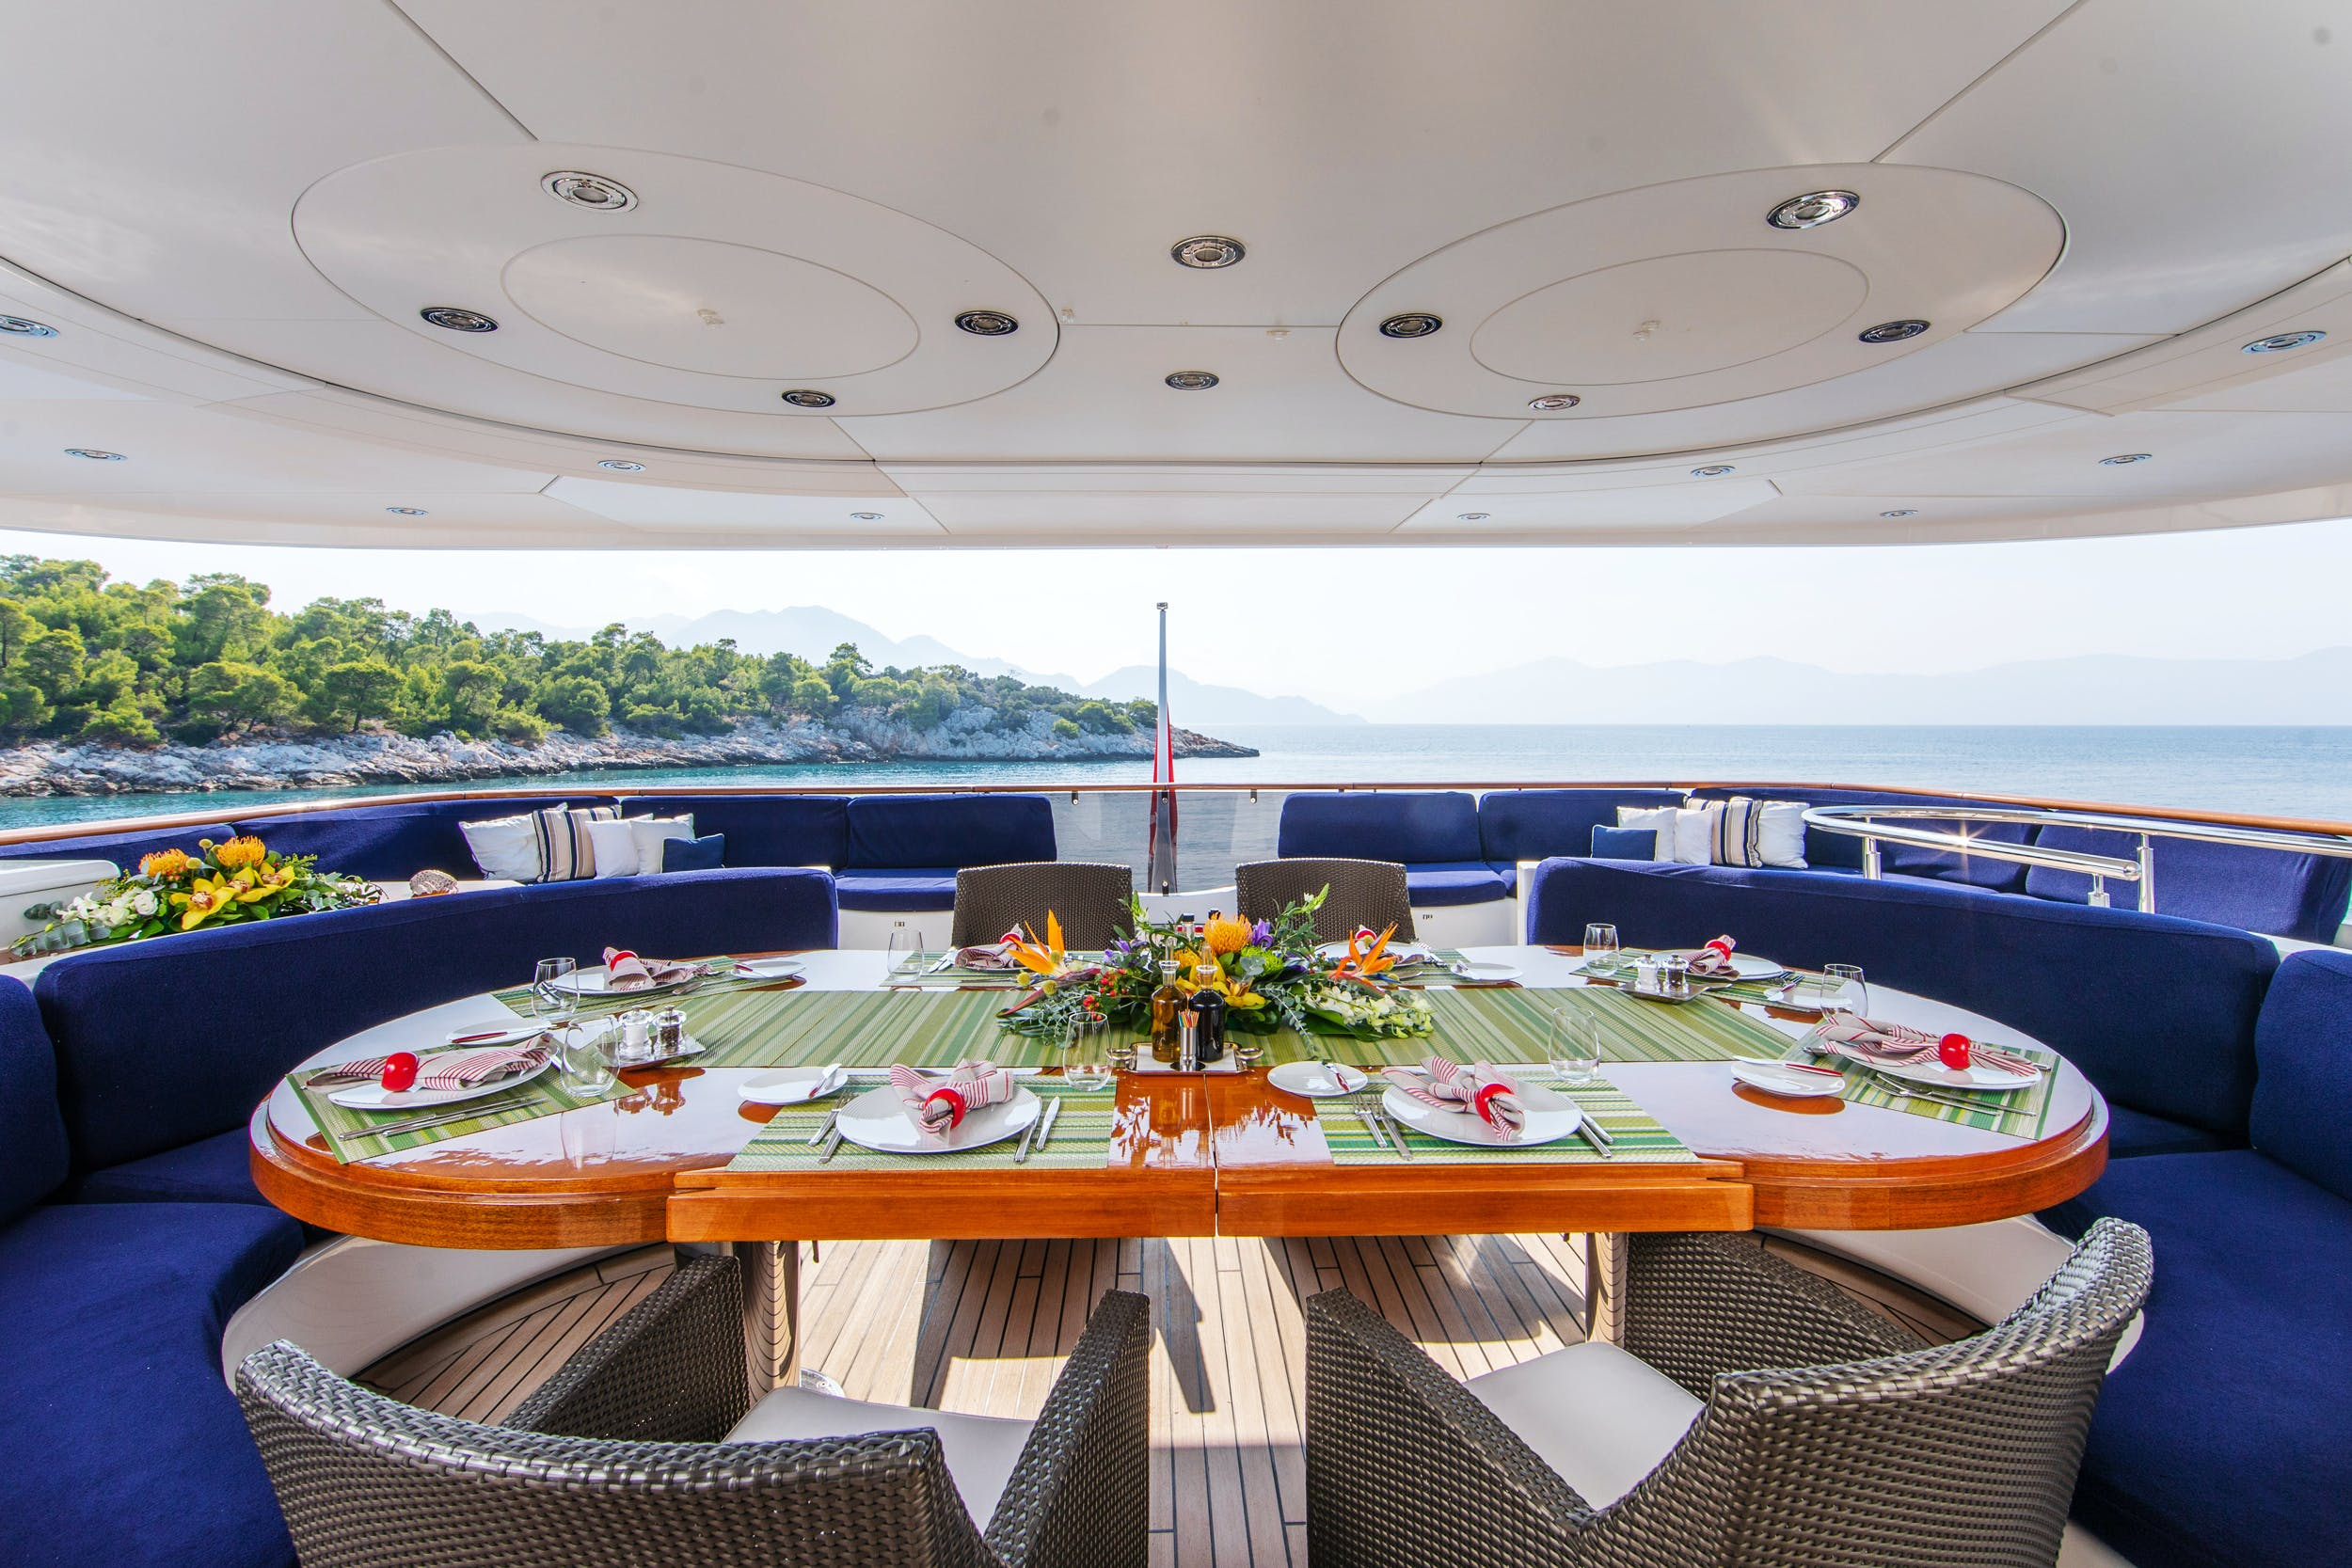 Seasonal Rates for RARE FIND Private Luxury Yacht For Charter